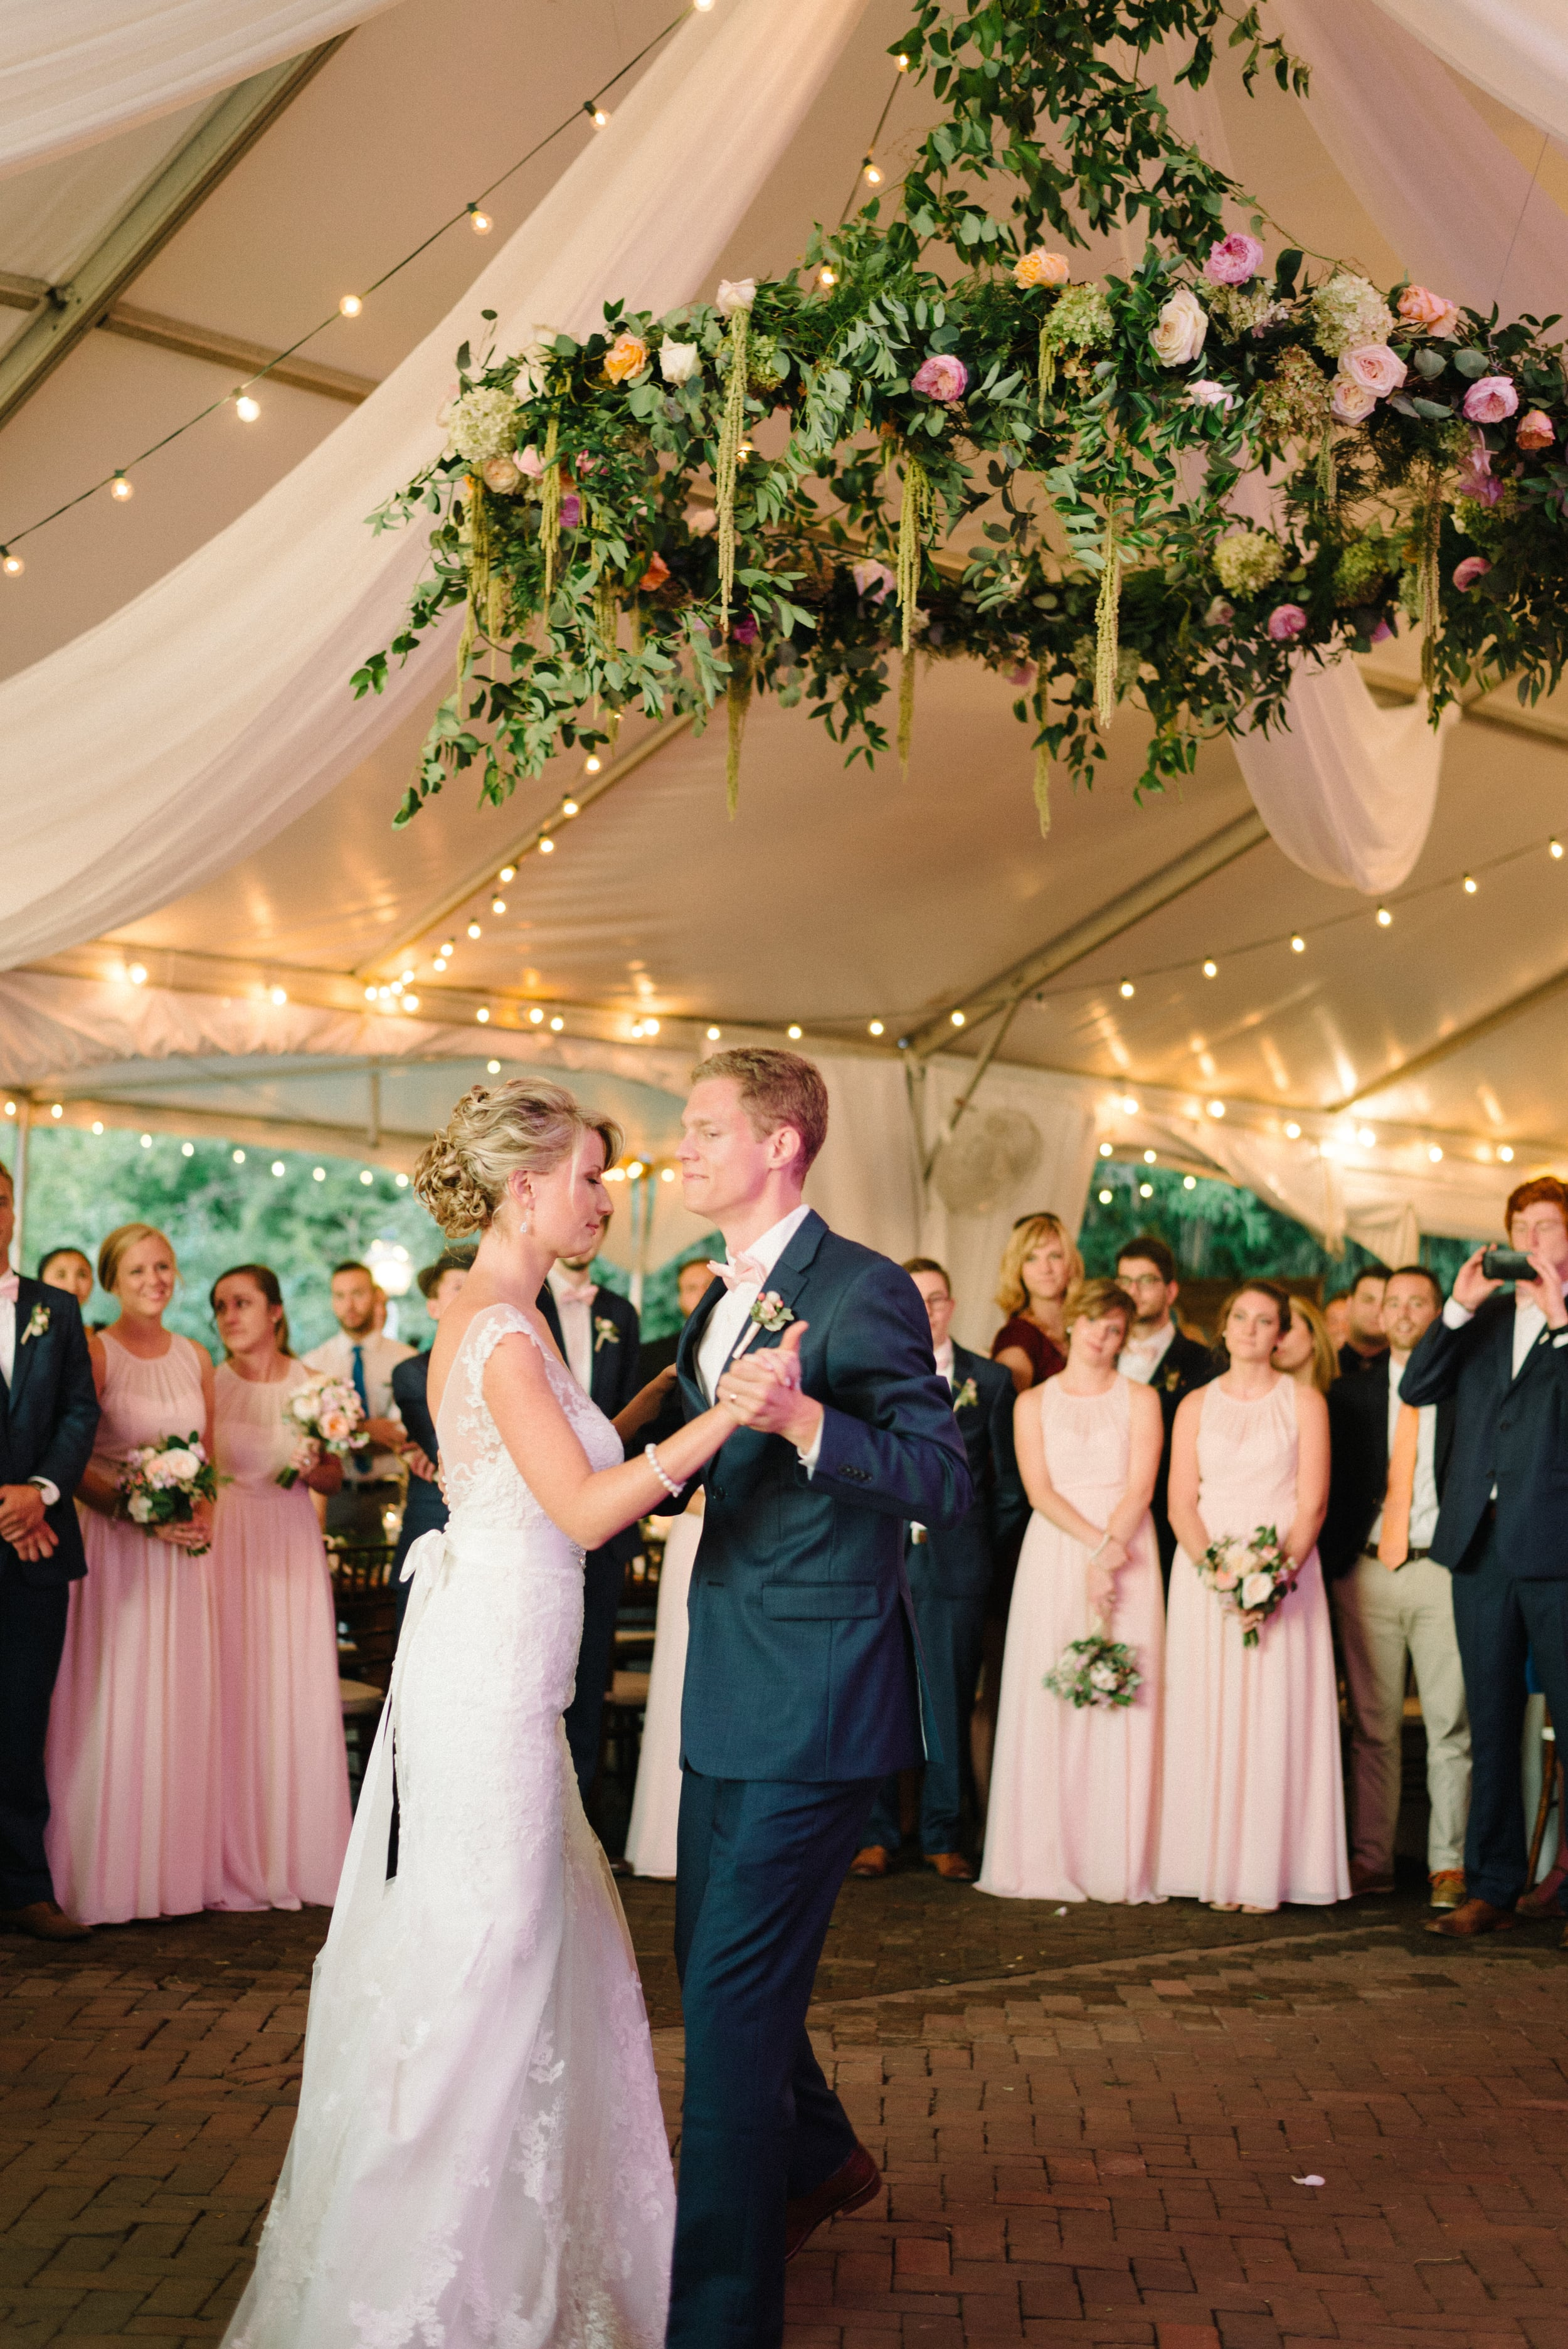 A Garden Party Florist, Inn at Fernbrook Farms, Michelle Lange Photography, Blush, Floral Chandelier